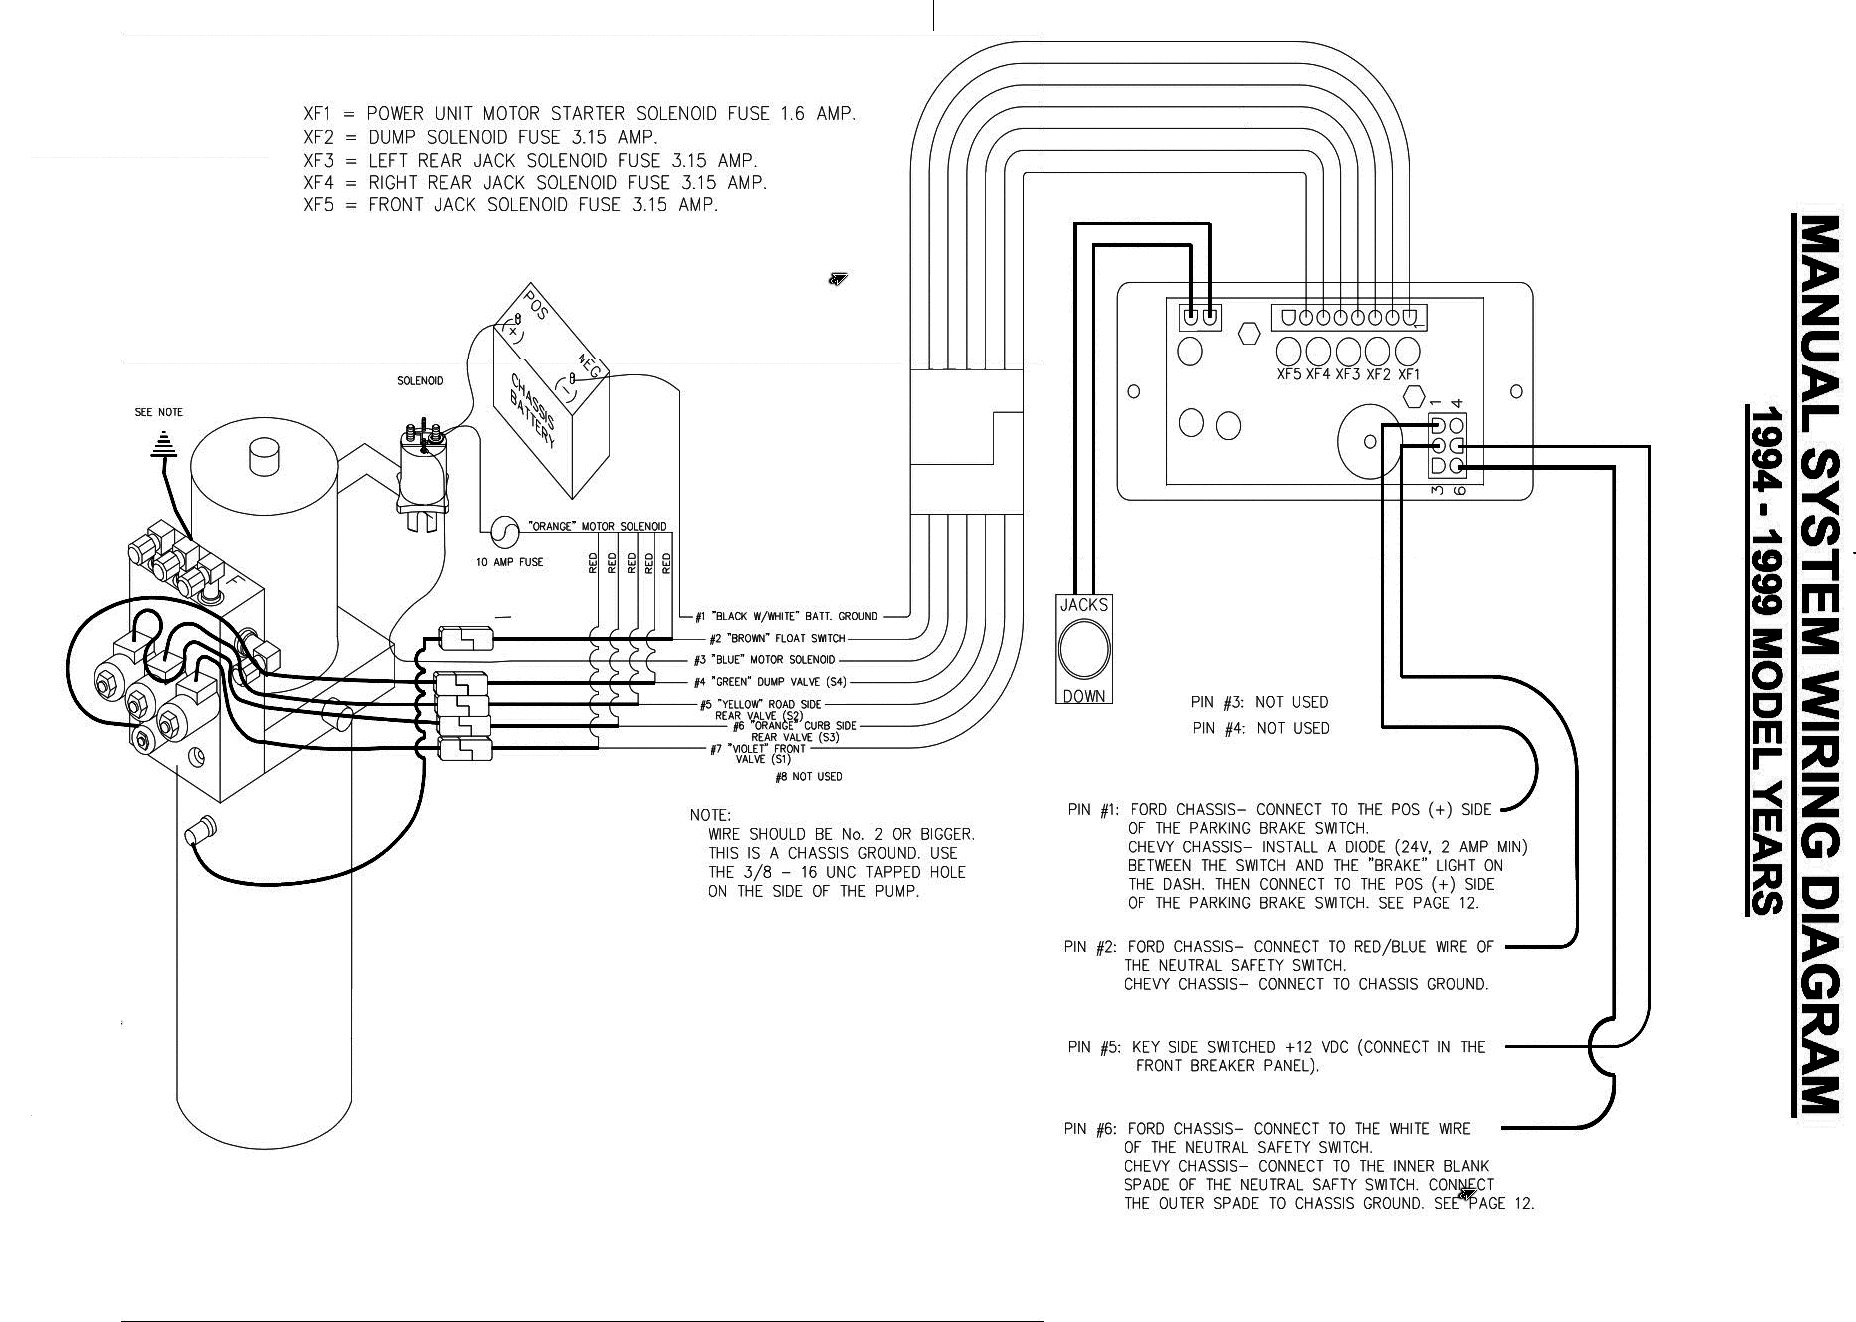 new schematicBW help!!! i have a wiring problem with a power gear control pad on a fleetwood rv wiring diagram at bakdesigns.co